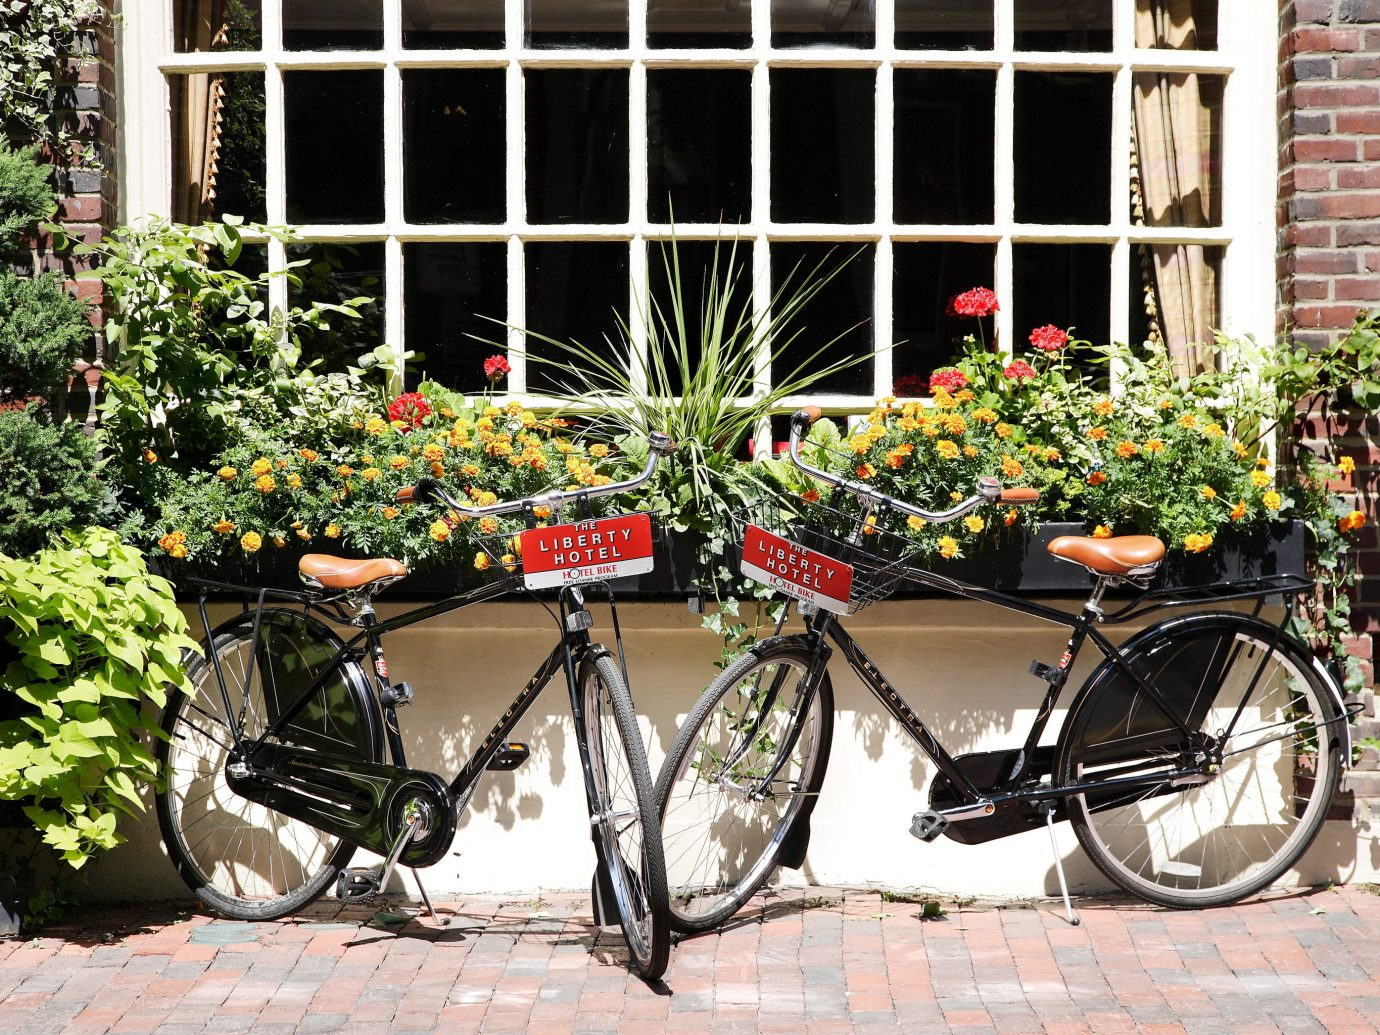 Exterior Hotels outdoor building bicycle parked brick sidewalk vehicle flower sports equipment stone curb scooter